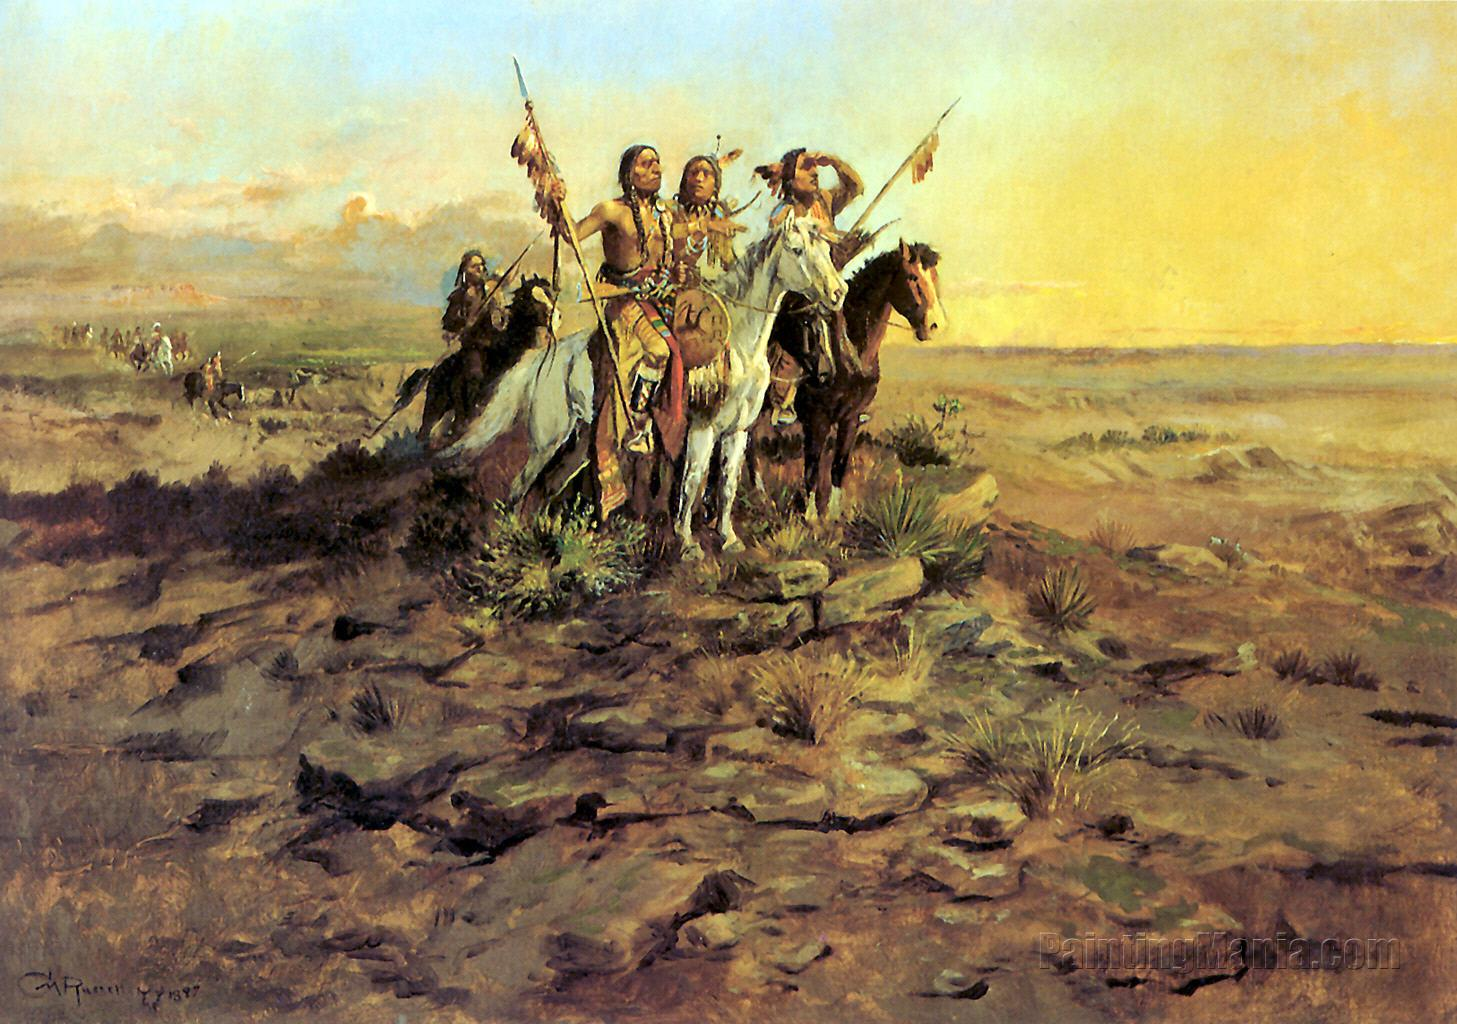 Approach of the White Men